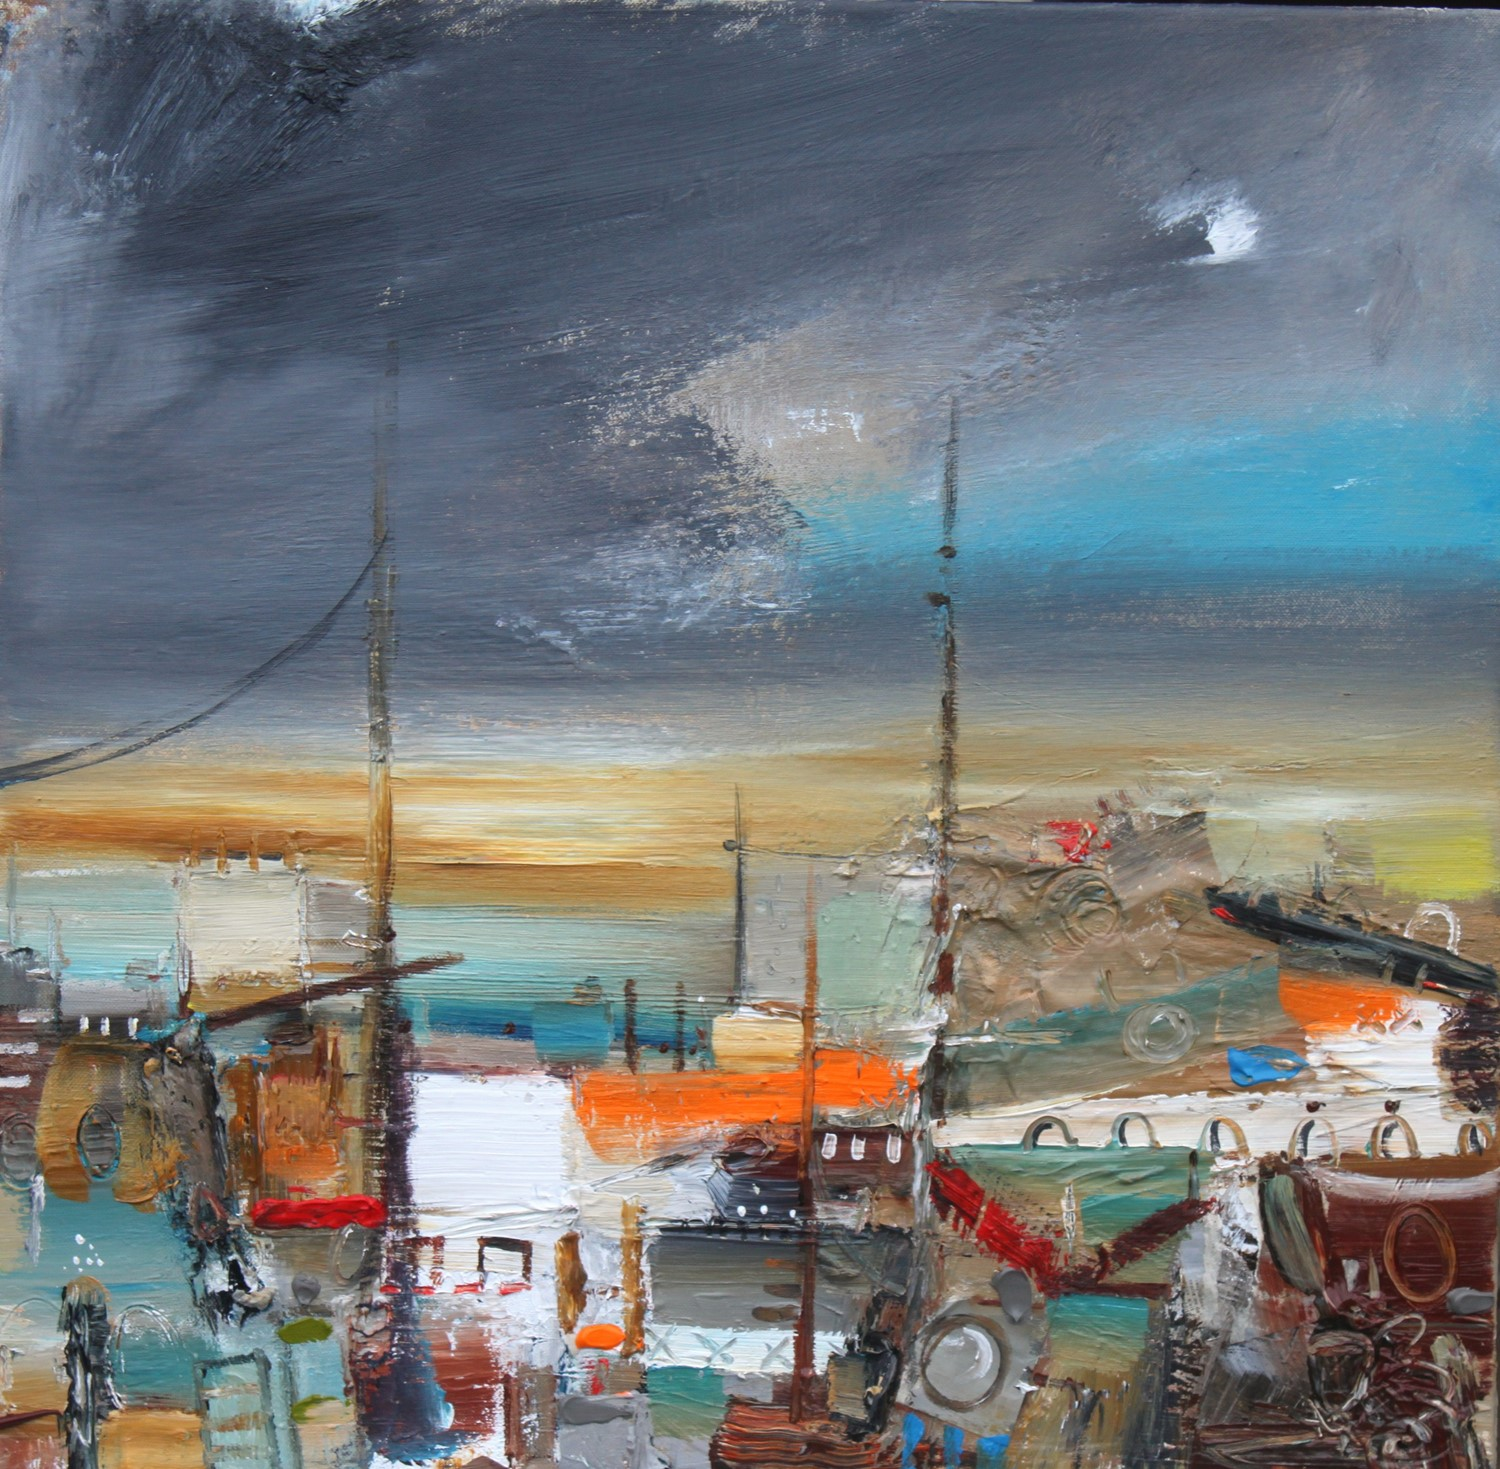 'Night setting on at the harbour' by artist Rosanne Barr